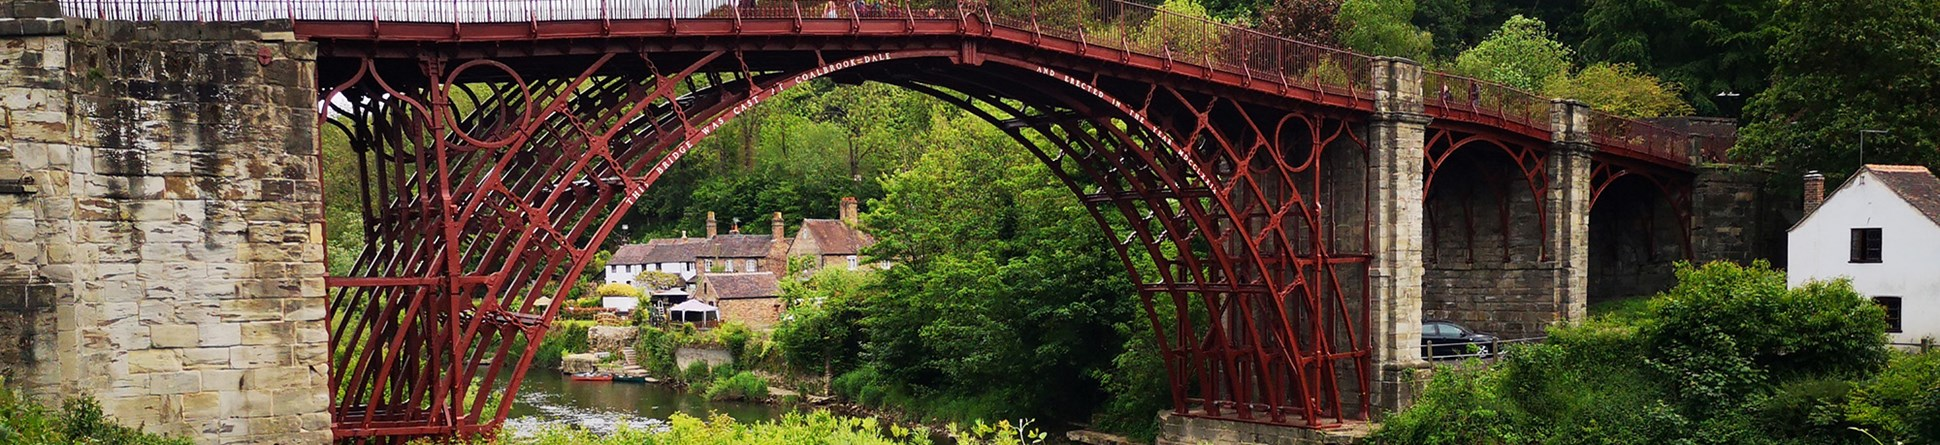 Cold-blast iron bridge spanning a river with thin iron parapet railings along the top.